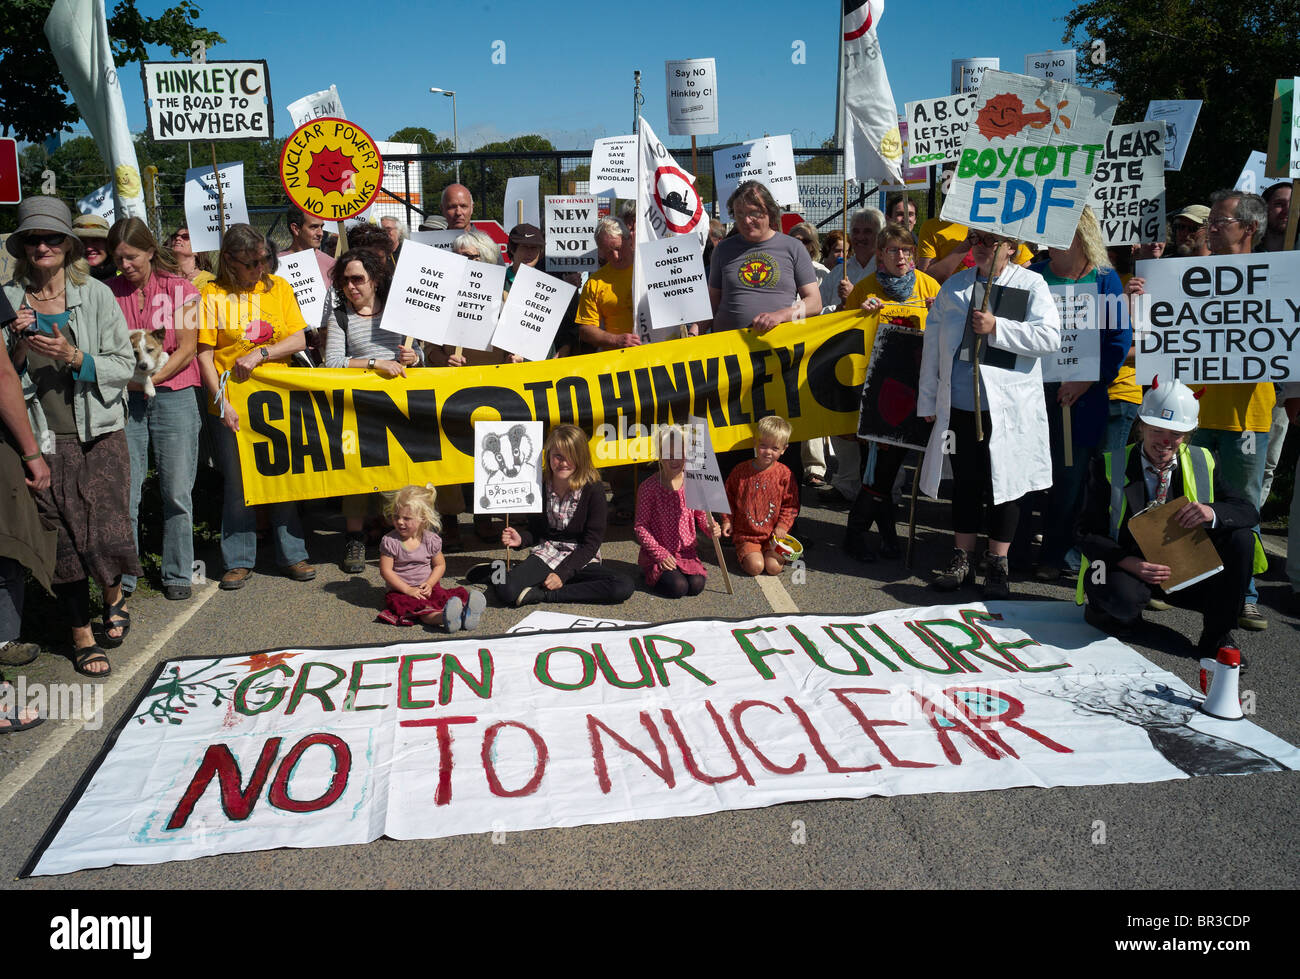 Demonstration against proposals to build a new nuclear power station at Hinkley Point in Somerset September 2010 - Stock Image